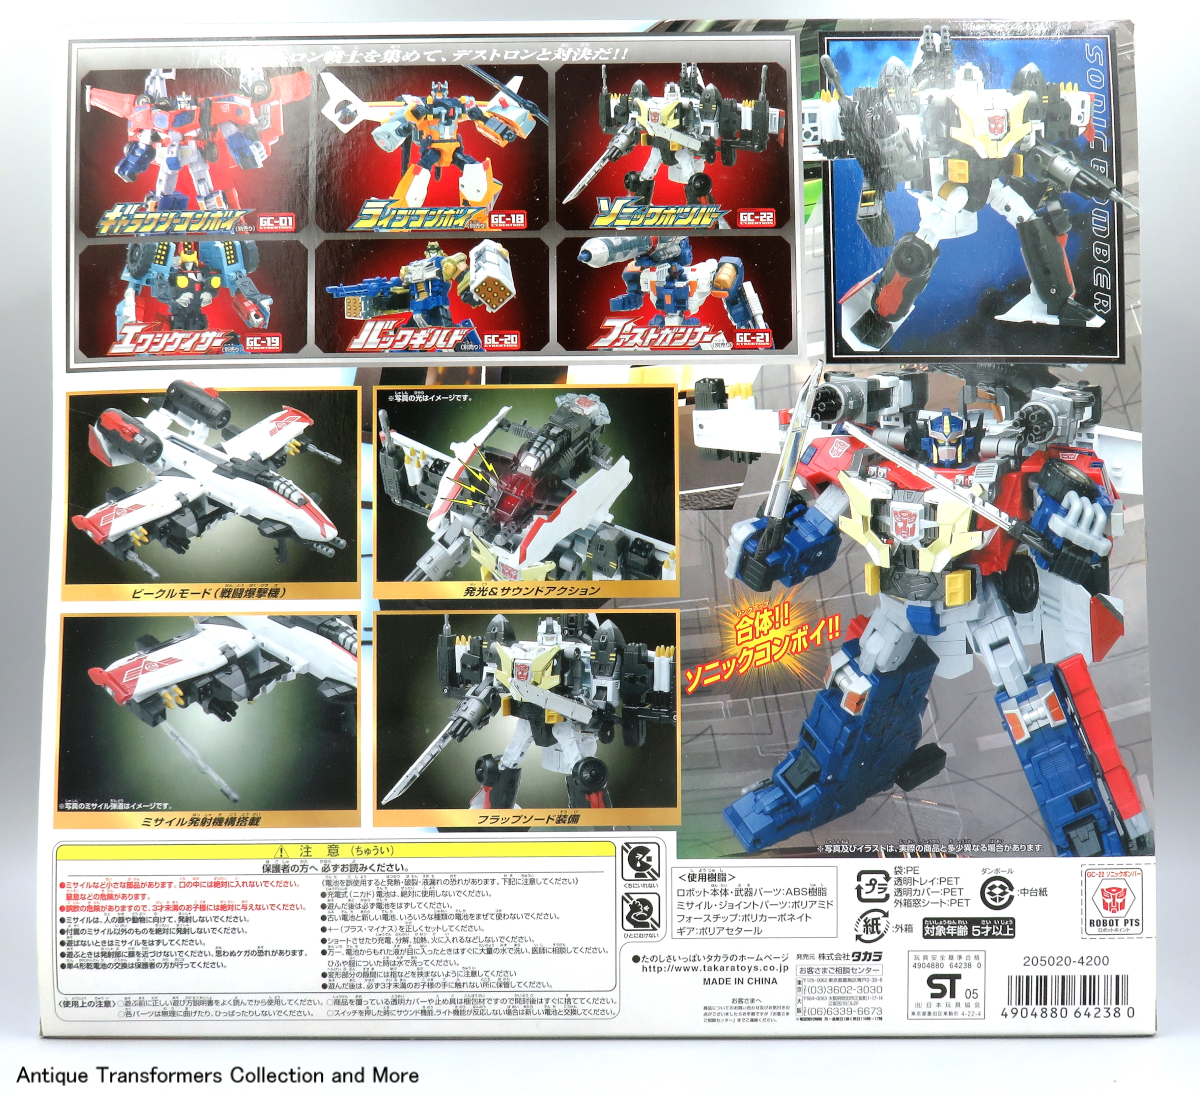 Galaxy Force Takara GC-32 Sonic Bomber Back WAS351.5NNC5100 1200.jpg